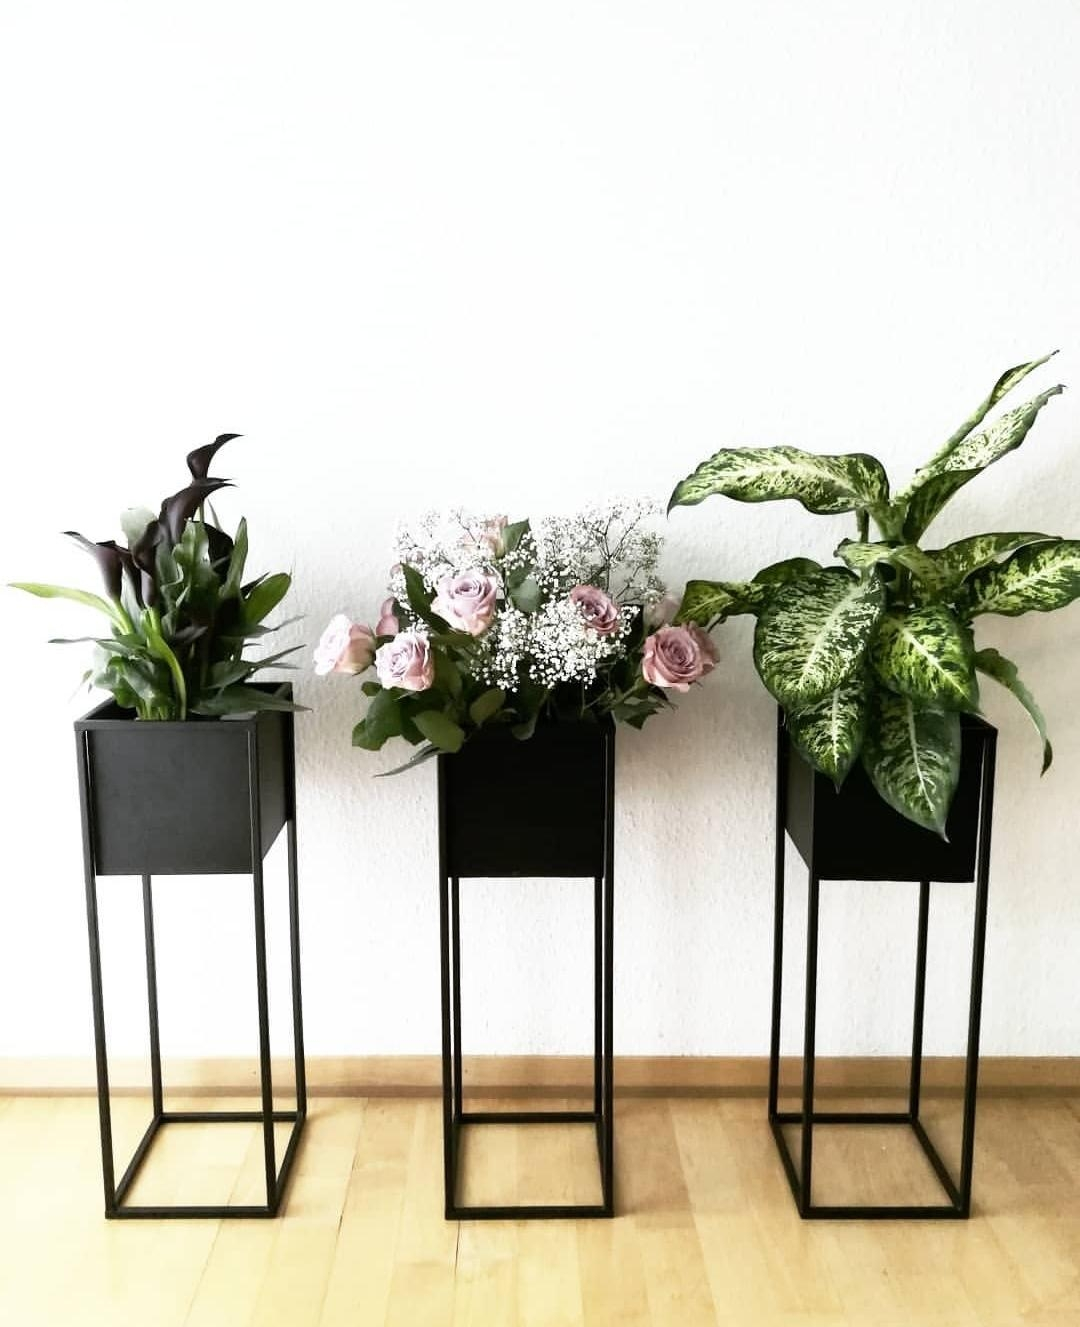 Flowers #whiteliving #blackinterior #plantsmakemehappy #flowersmakemehappy #keepitsimple #wgzimmer